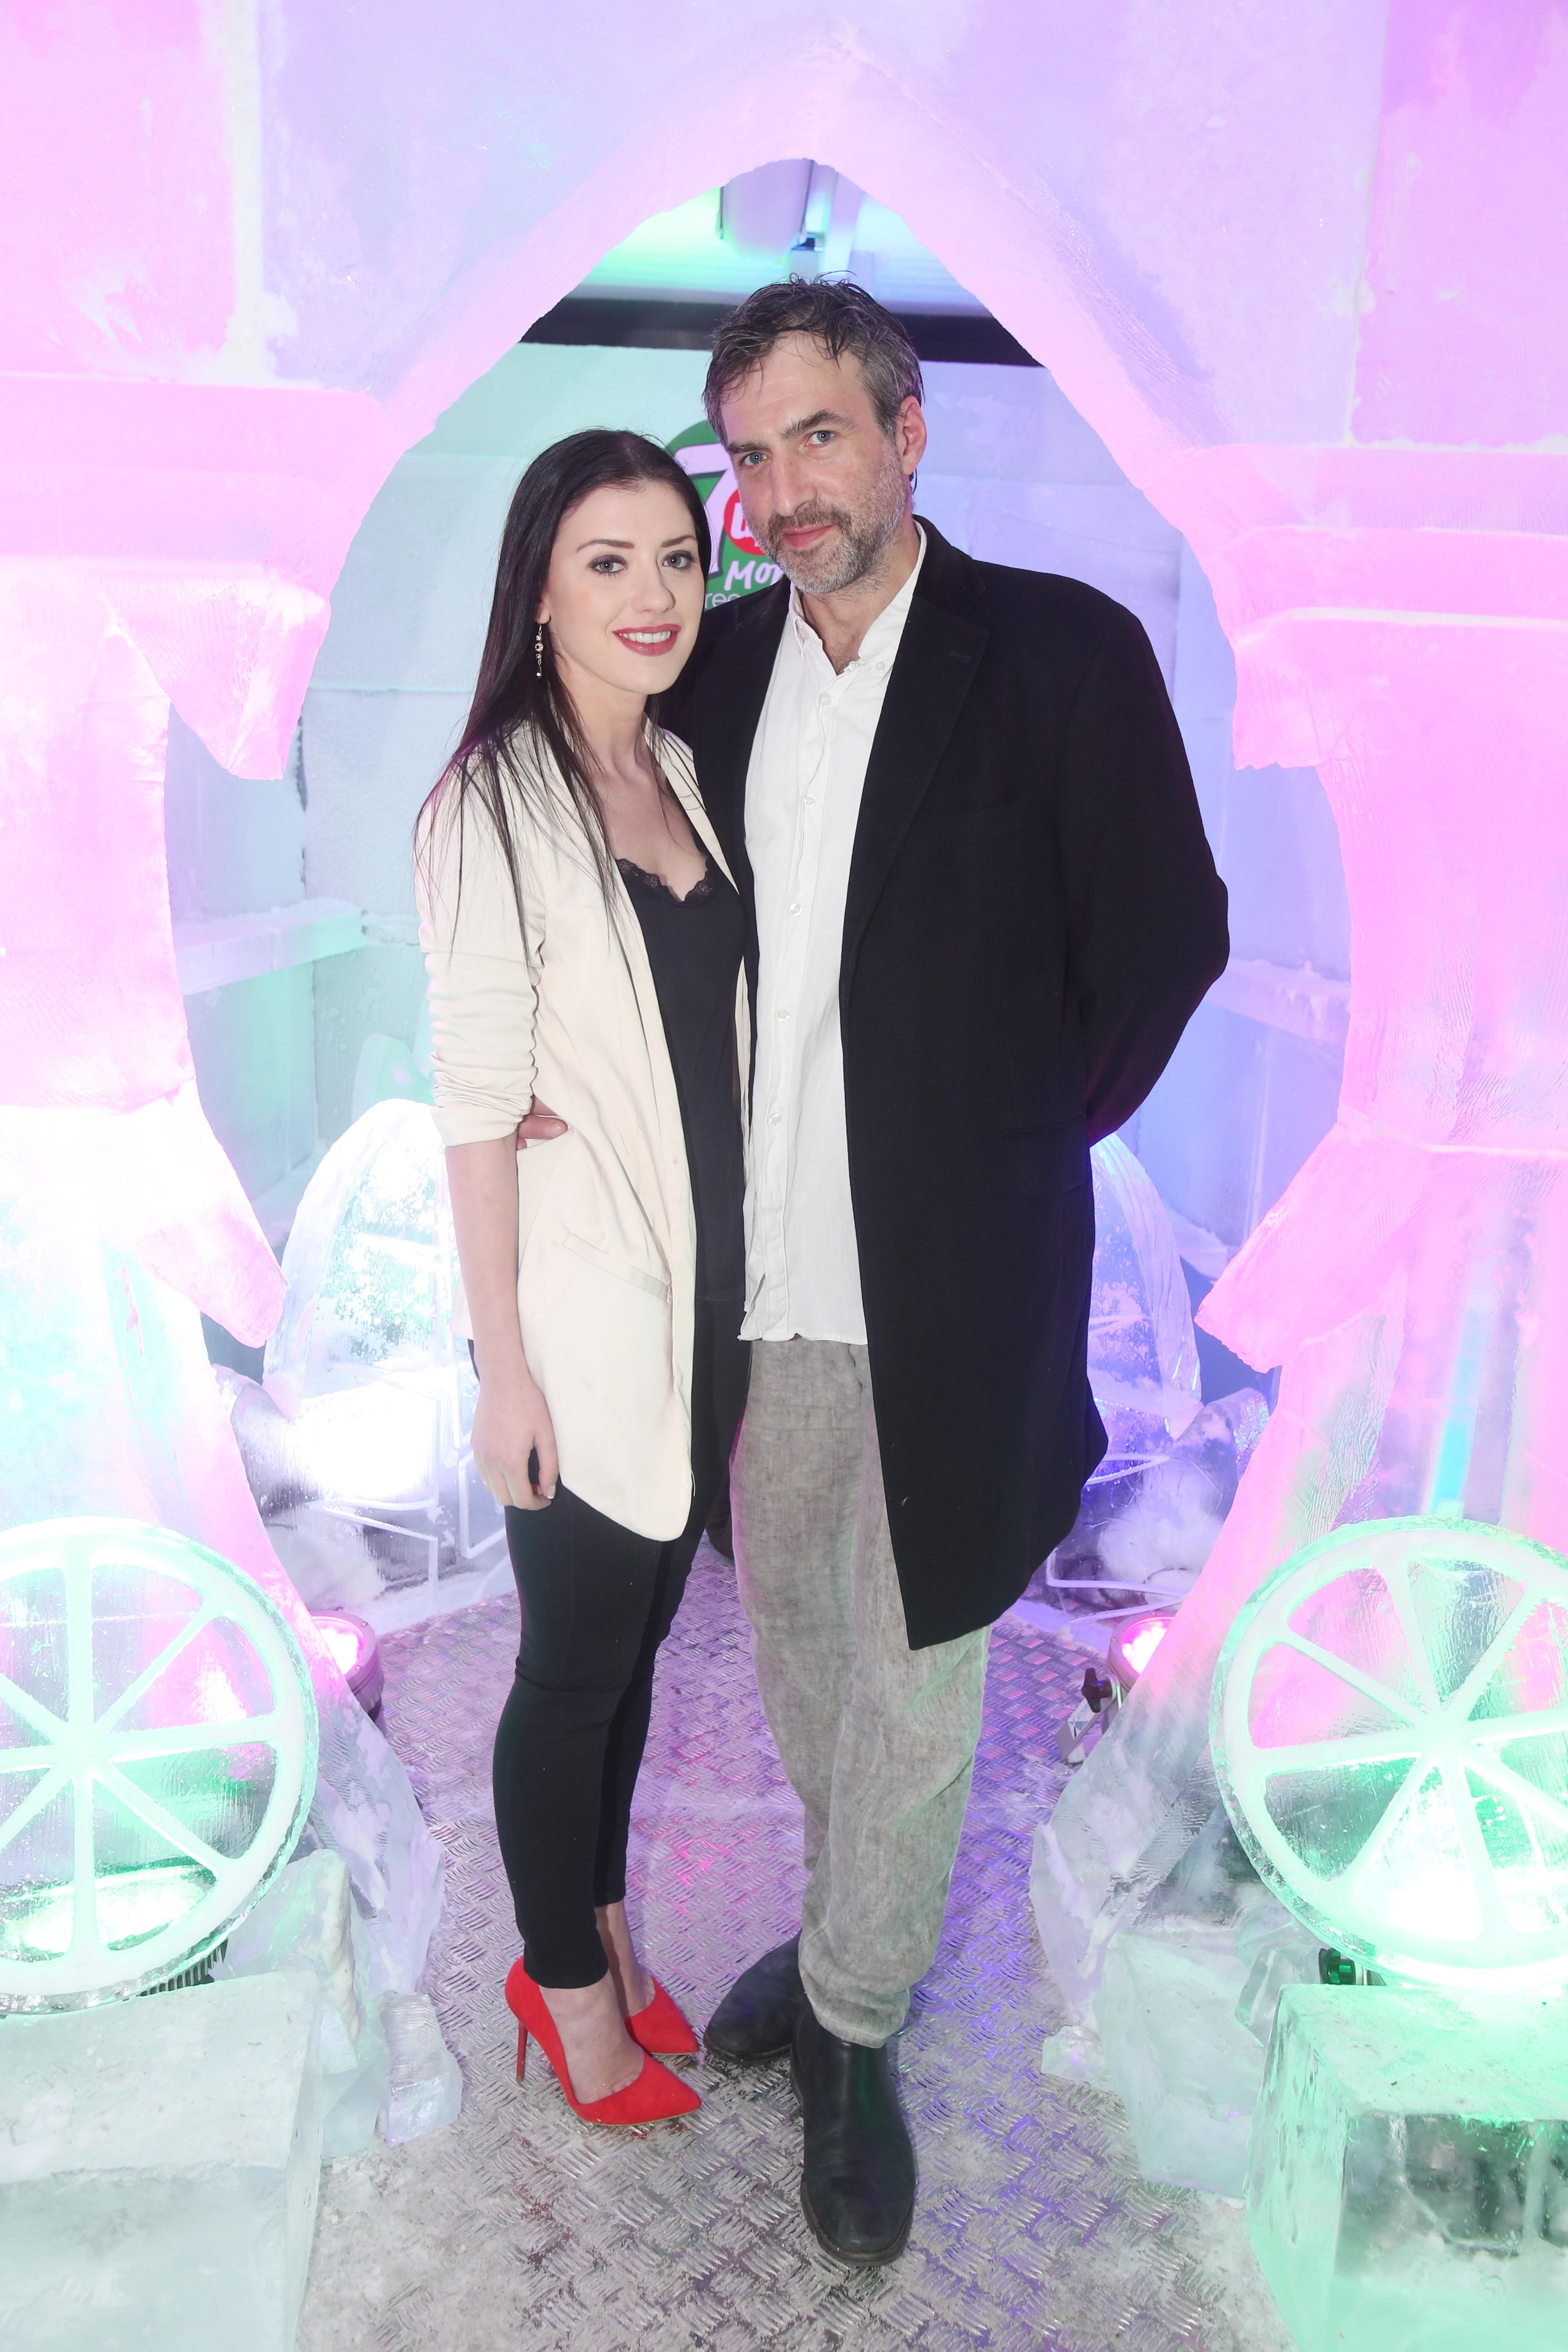 NO REPRO FEE  Emma Elizaregan and Steve Kingston pictured at the launch of the 7UP Mojito Free RefreshMINT Experience on Sir John Rogerson's Quay. Dublin's first ever ice experience is now open to the public until Monday, 6th June.Photo Leon Farrell/Photocall Ireland.